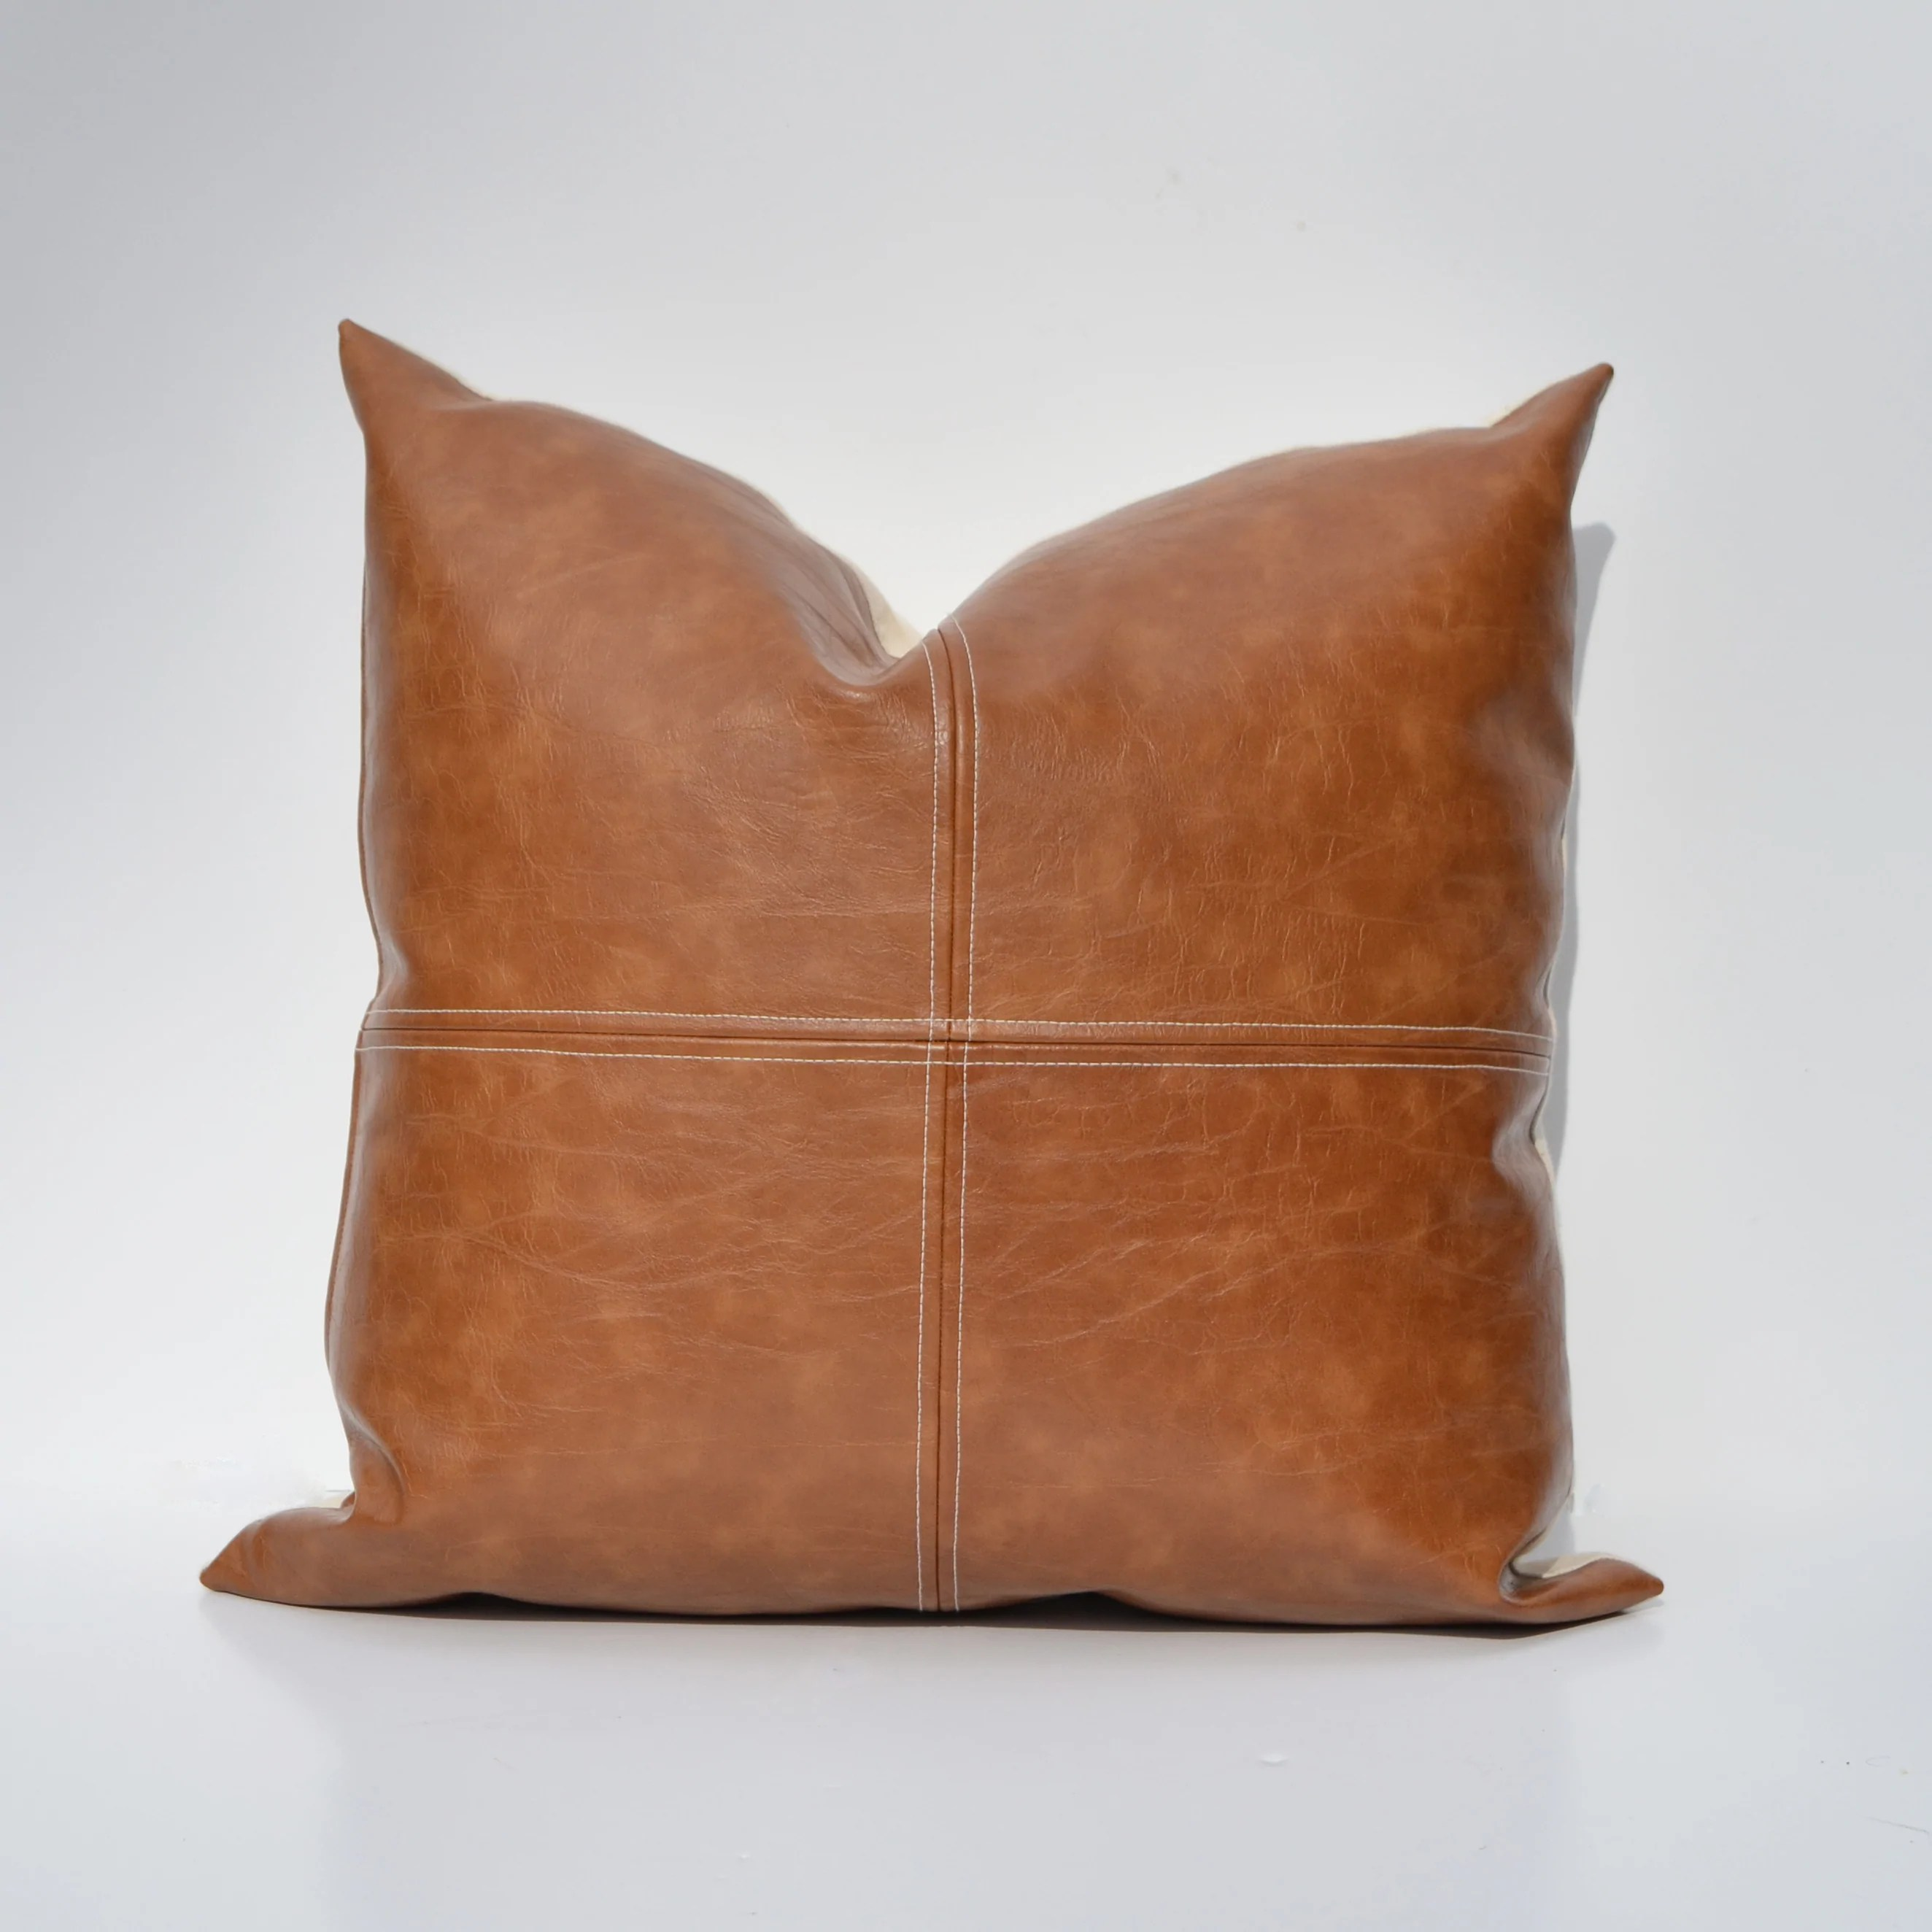 Caramel Brown Paneled Faux Leather Pillow Cover - Custom